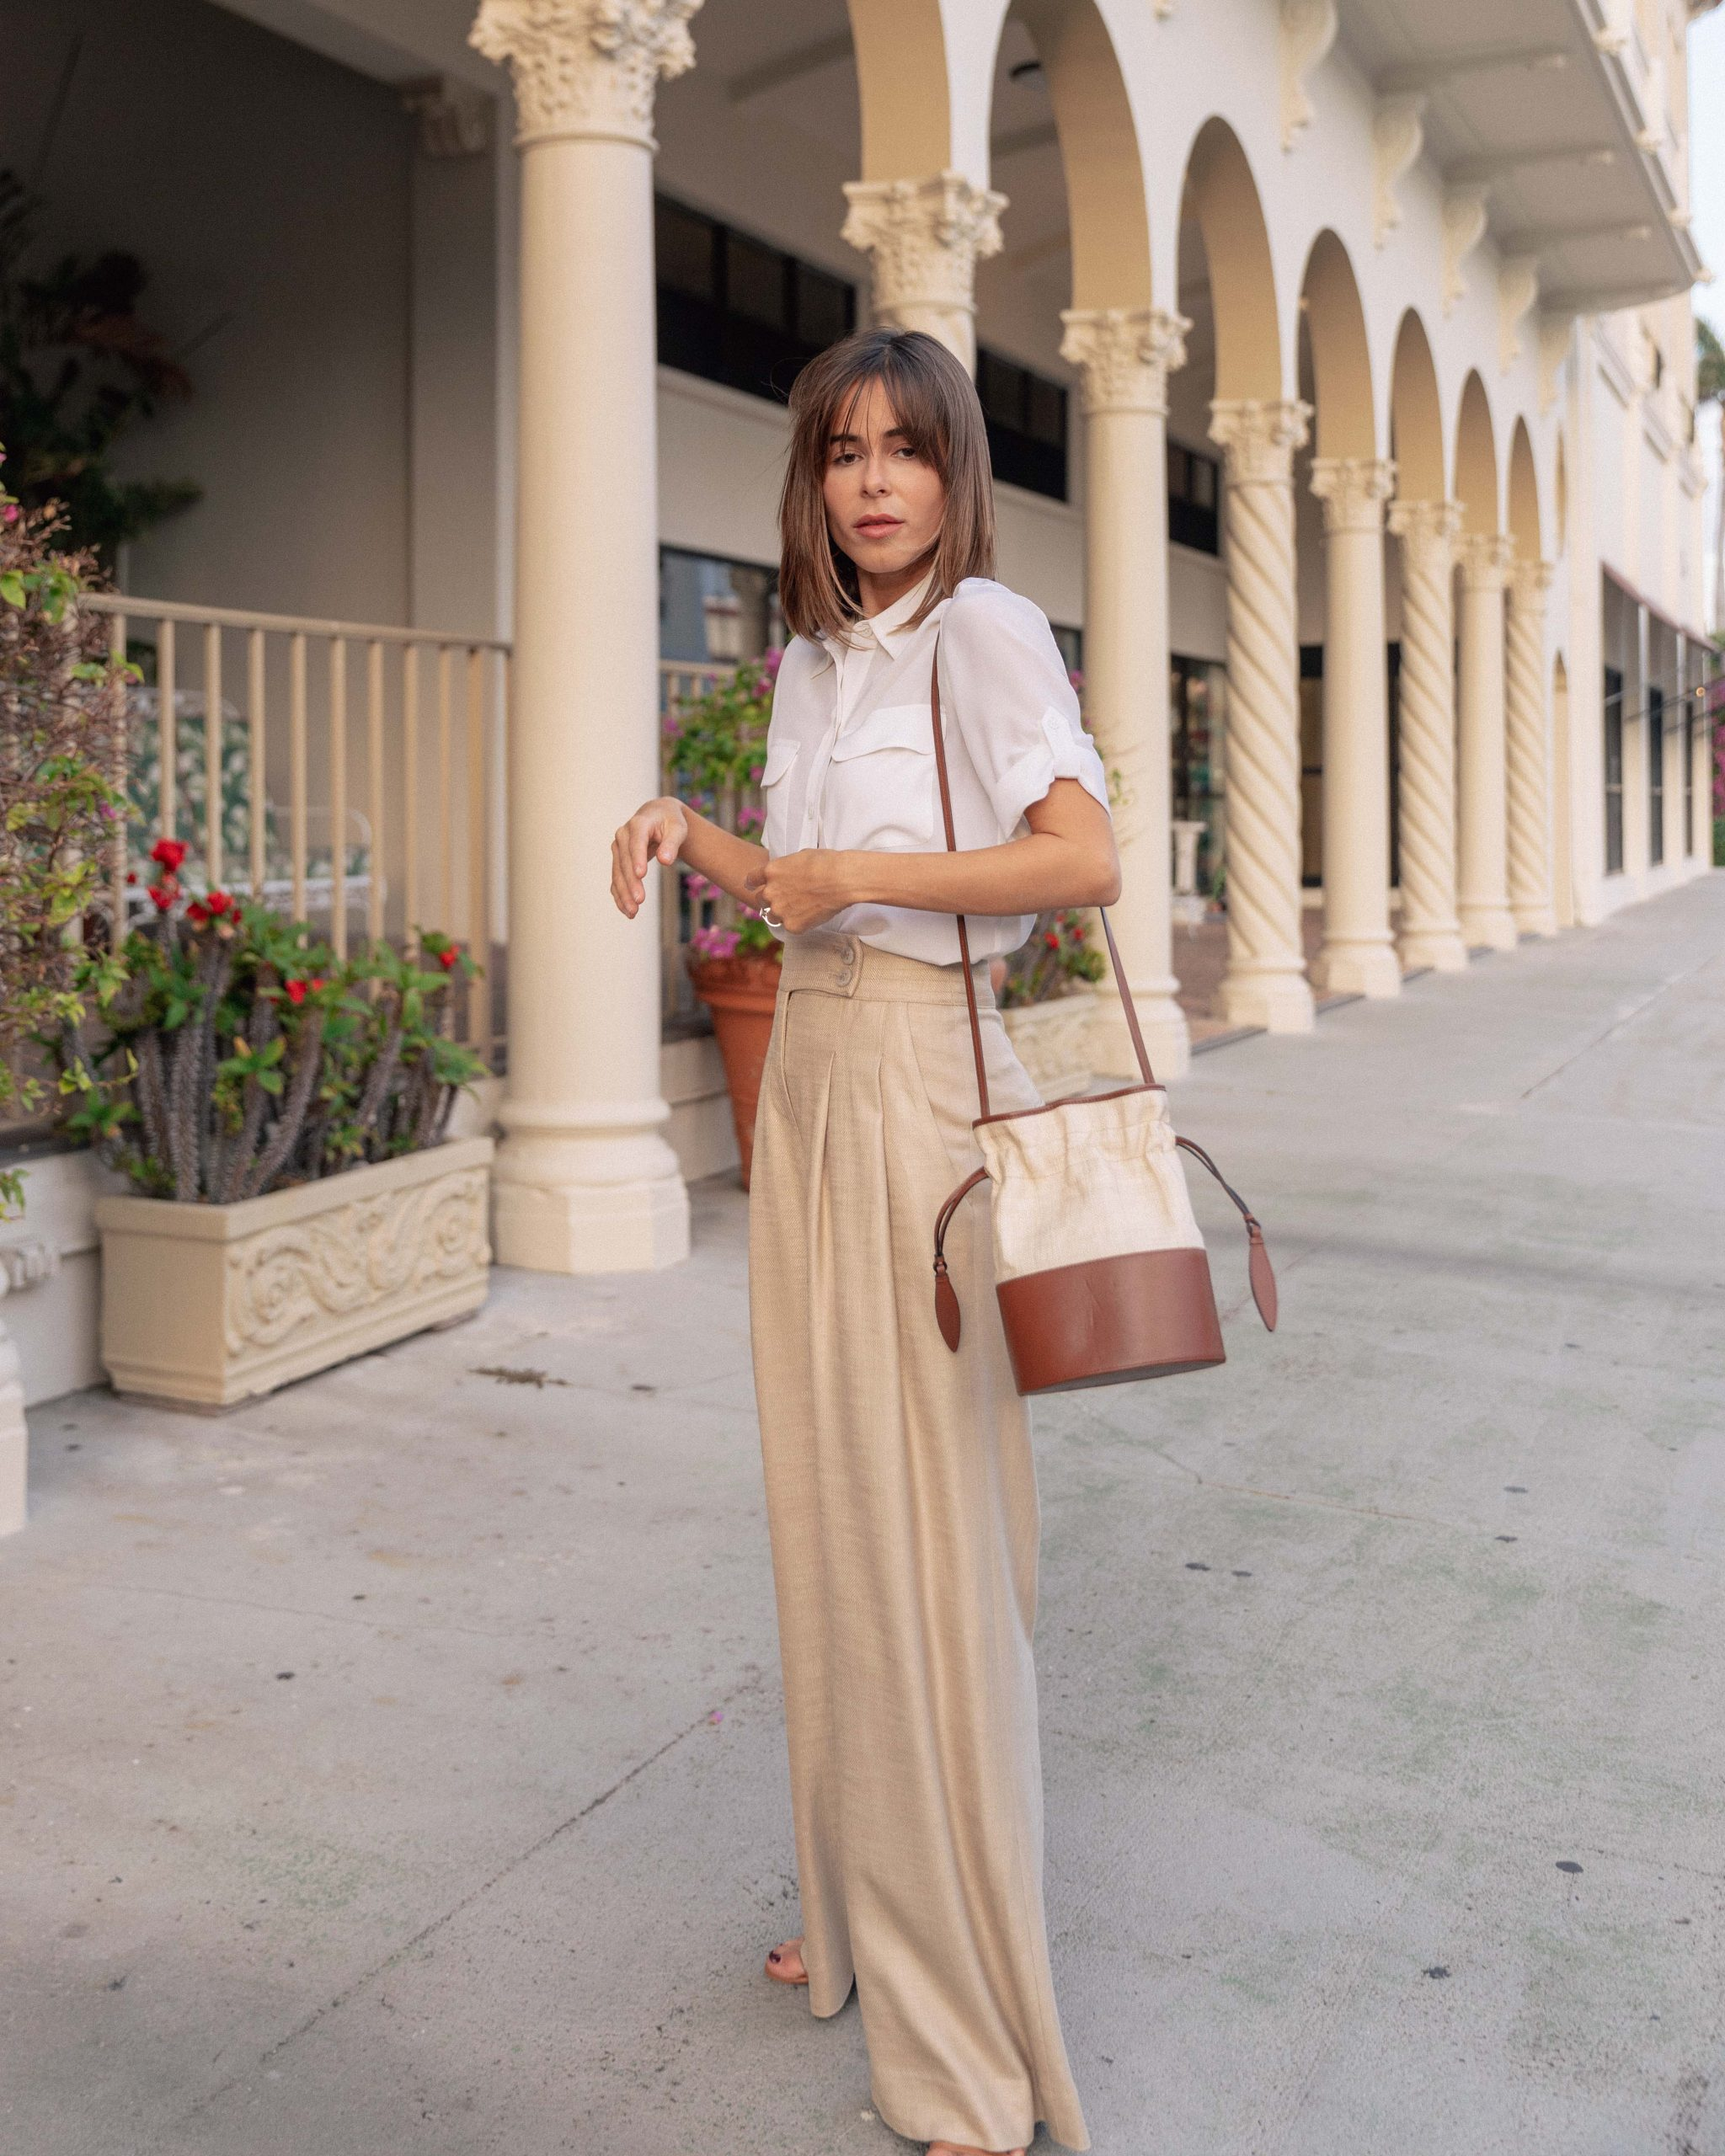 Fashion Blogger Stephanie Hill wears #ootd featuring Equipment blouse on The Style Bungalow